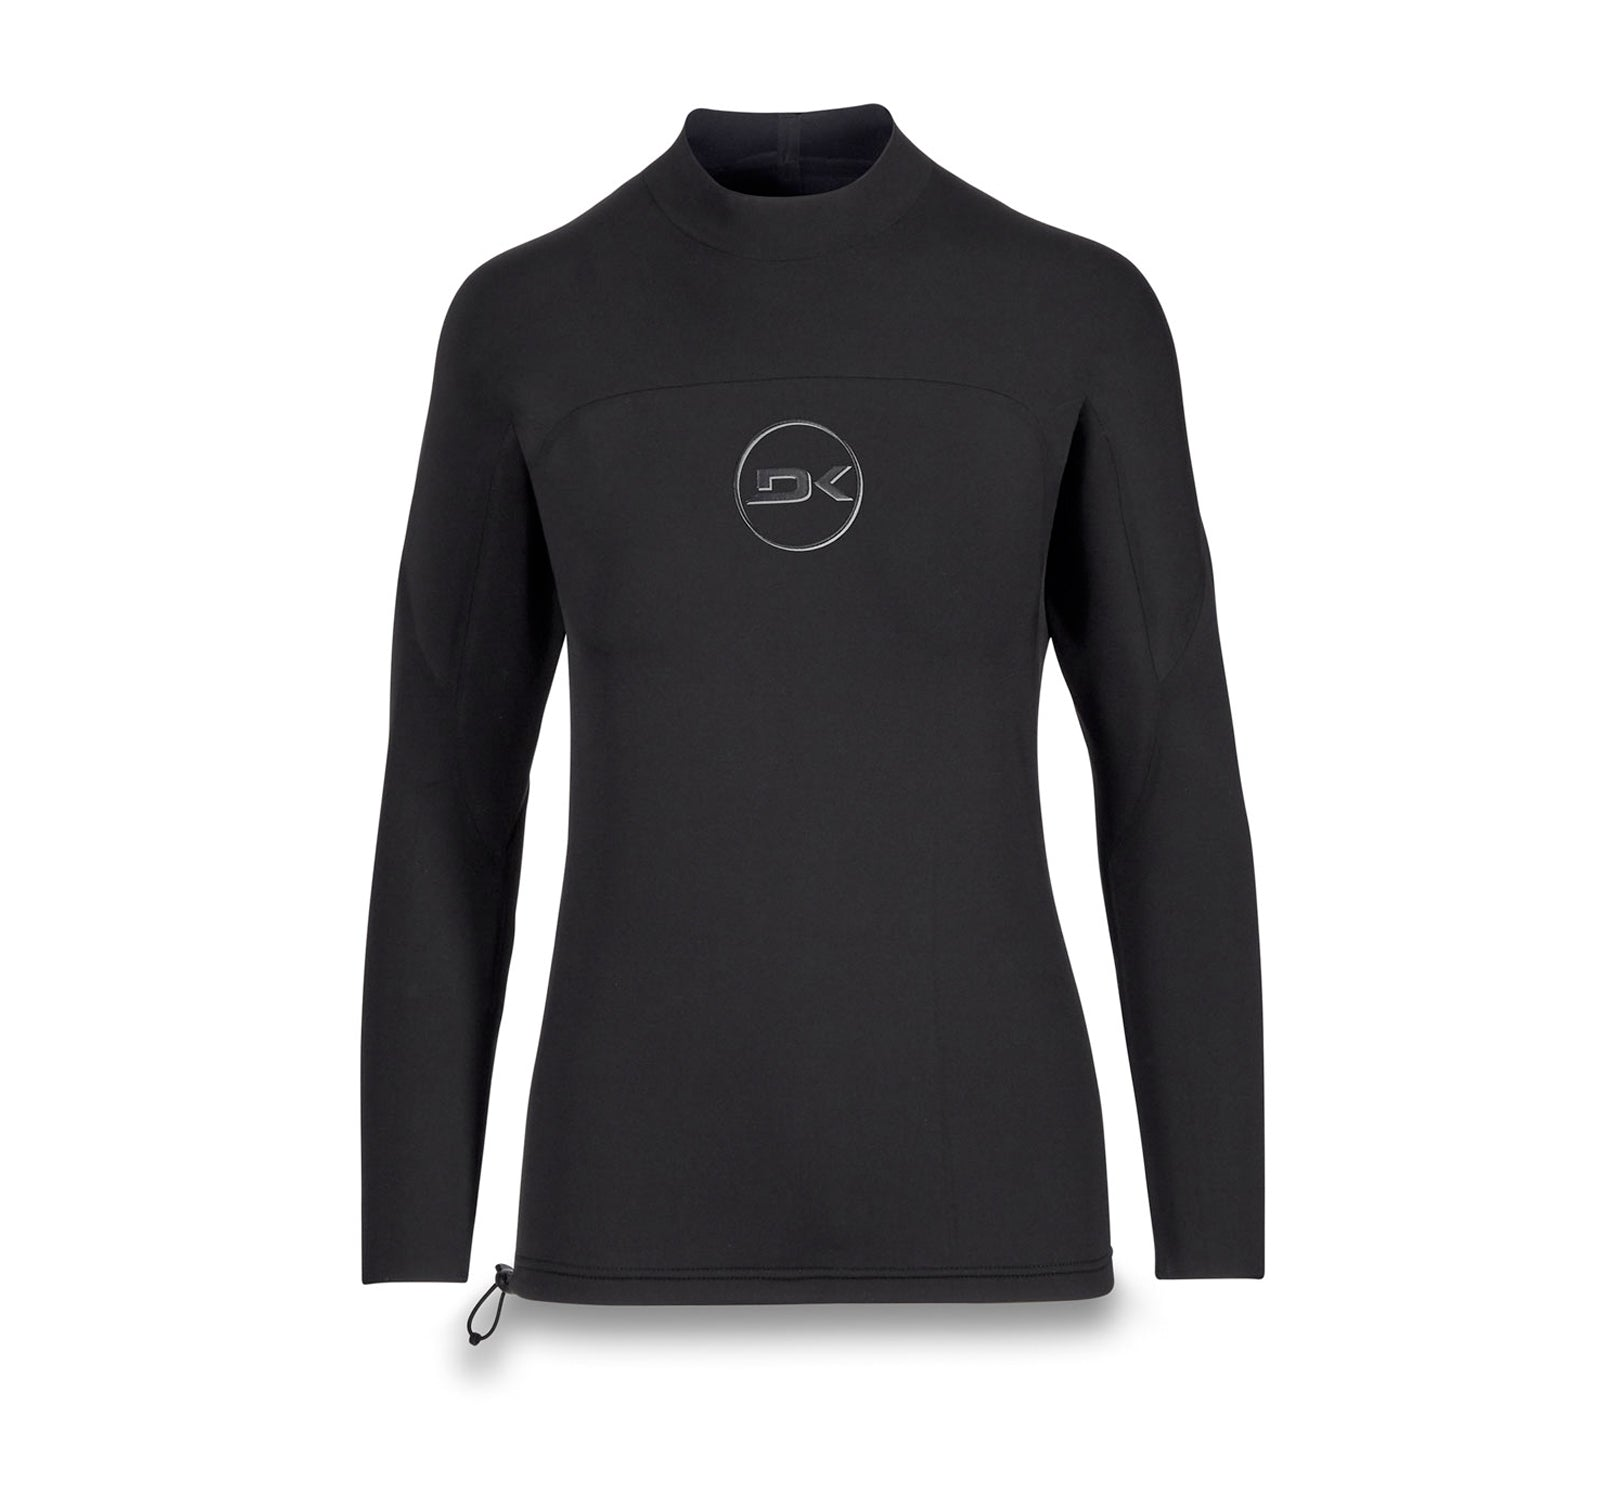 Dakine Neo Stitchfree Men's L/S Wetsuit Jacket